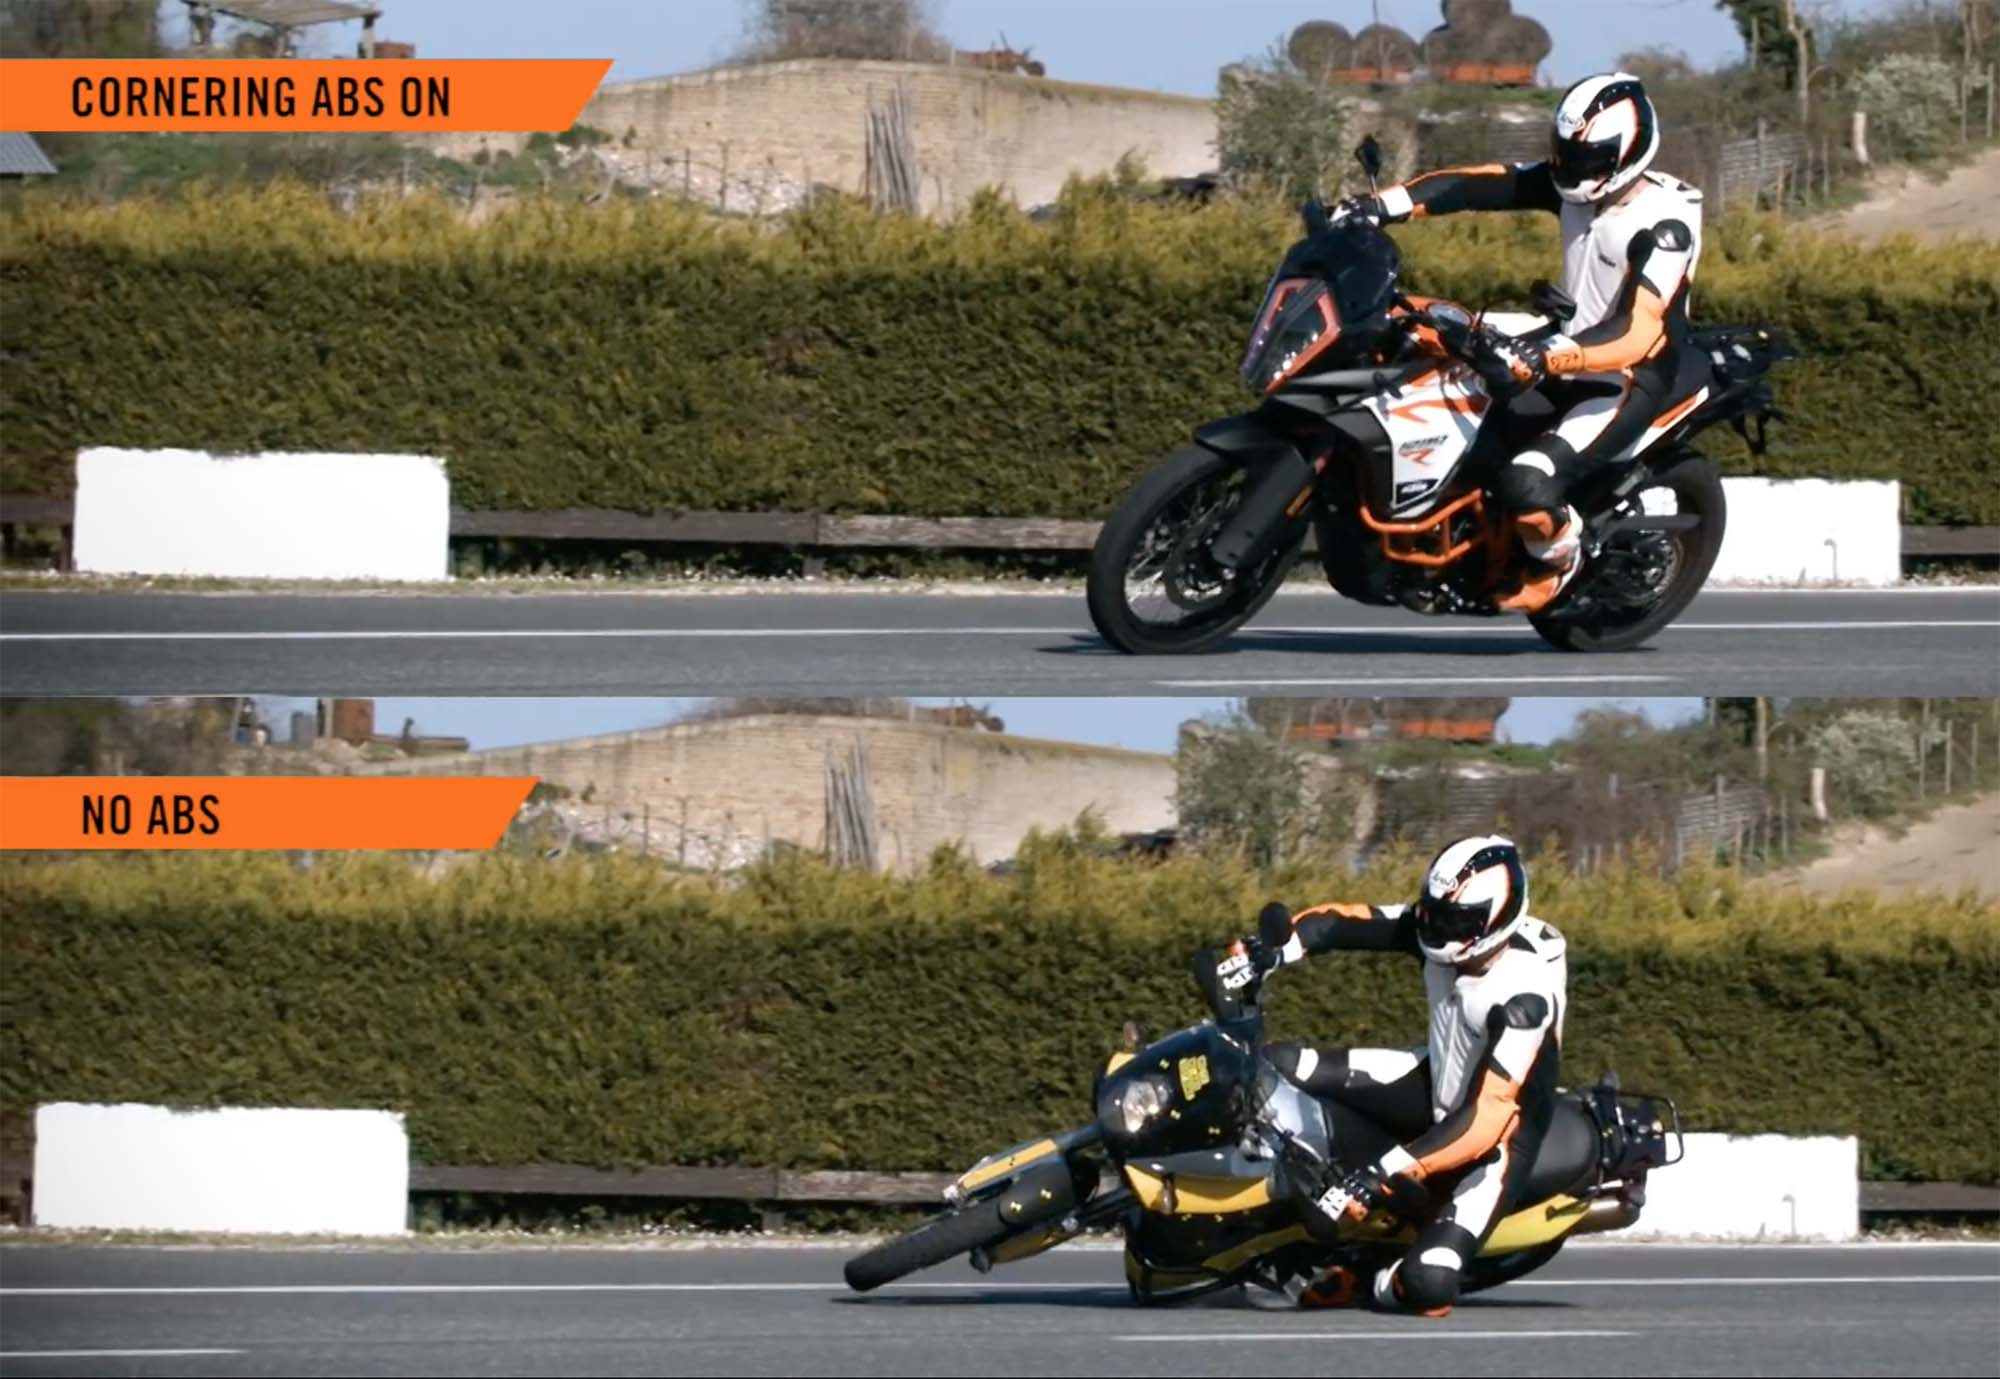 KTM cornering abs video 03